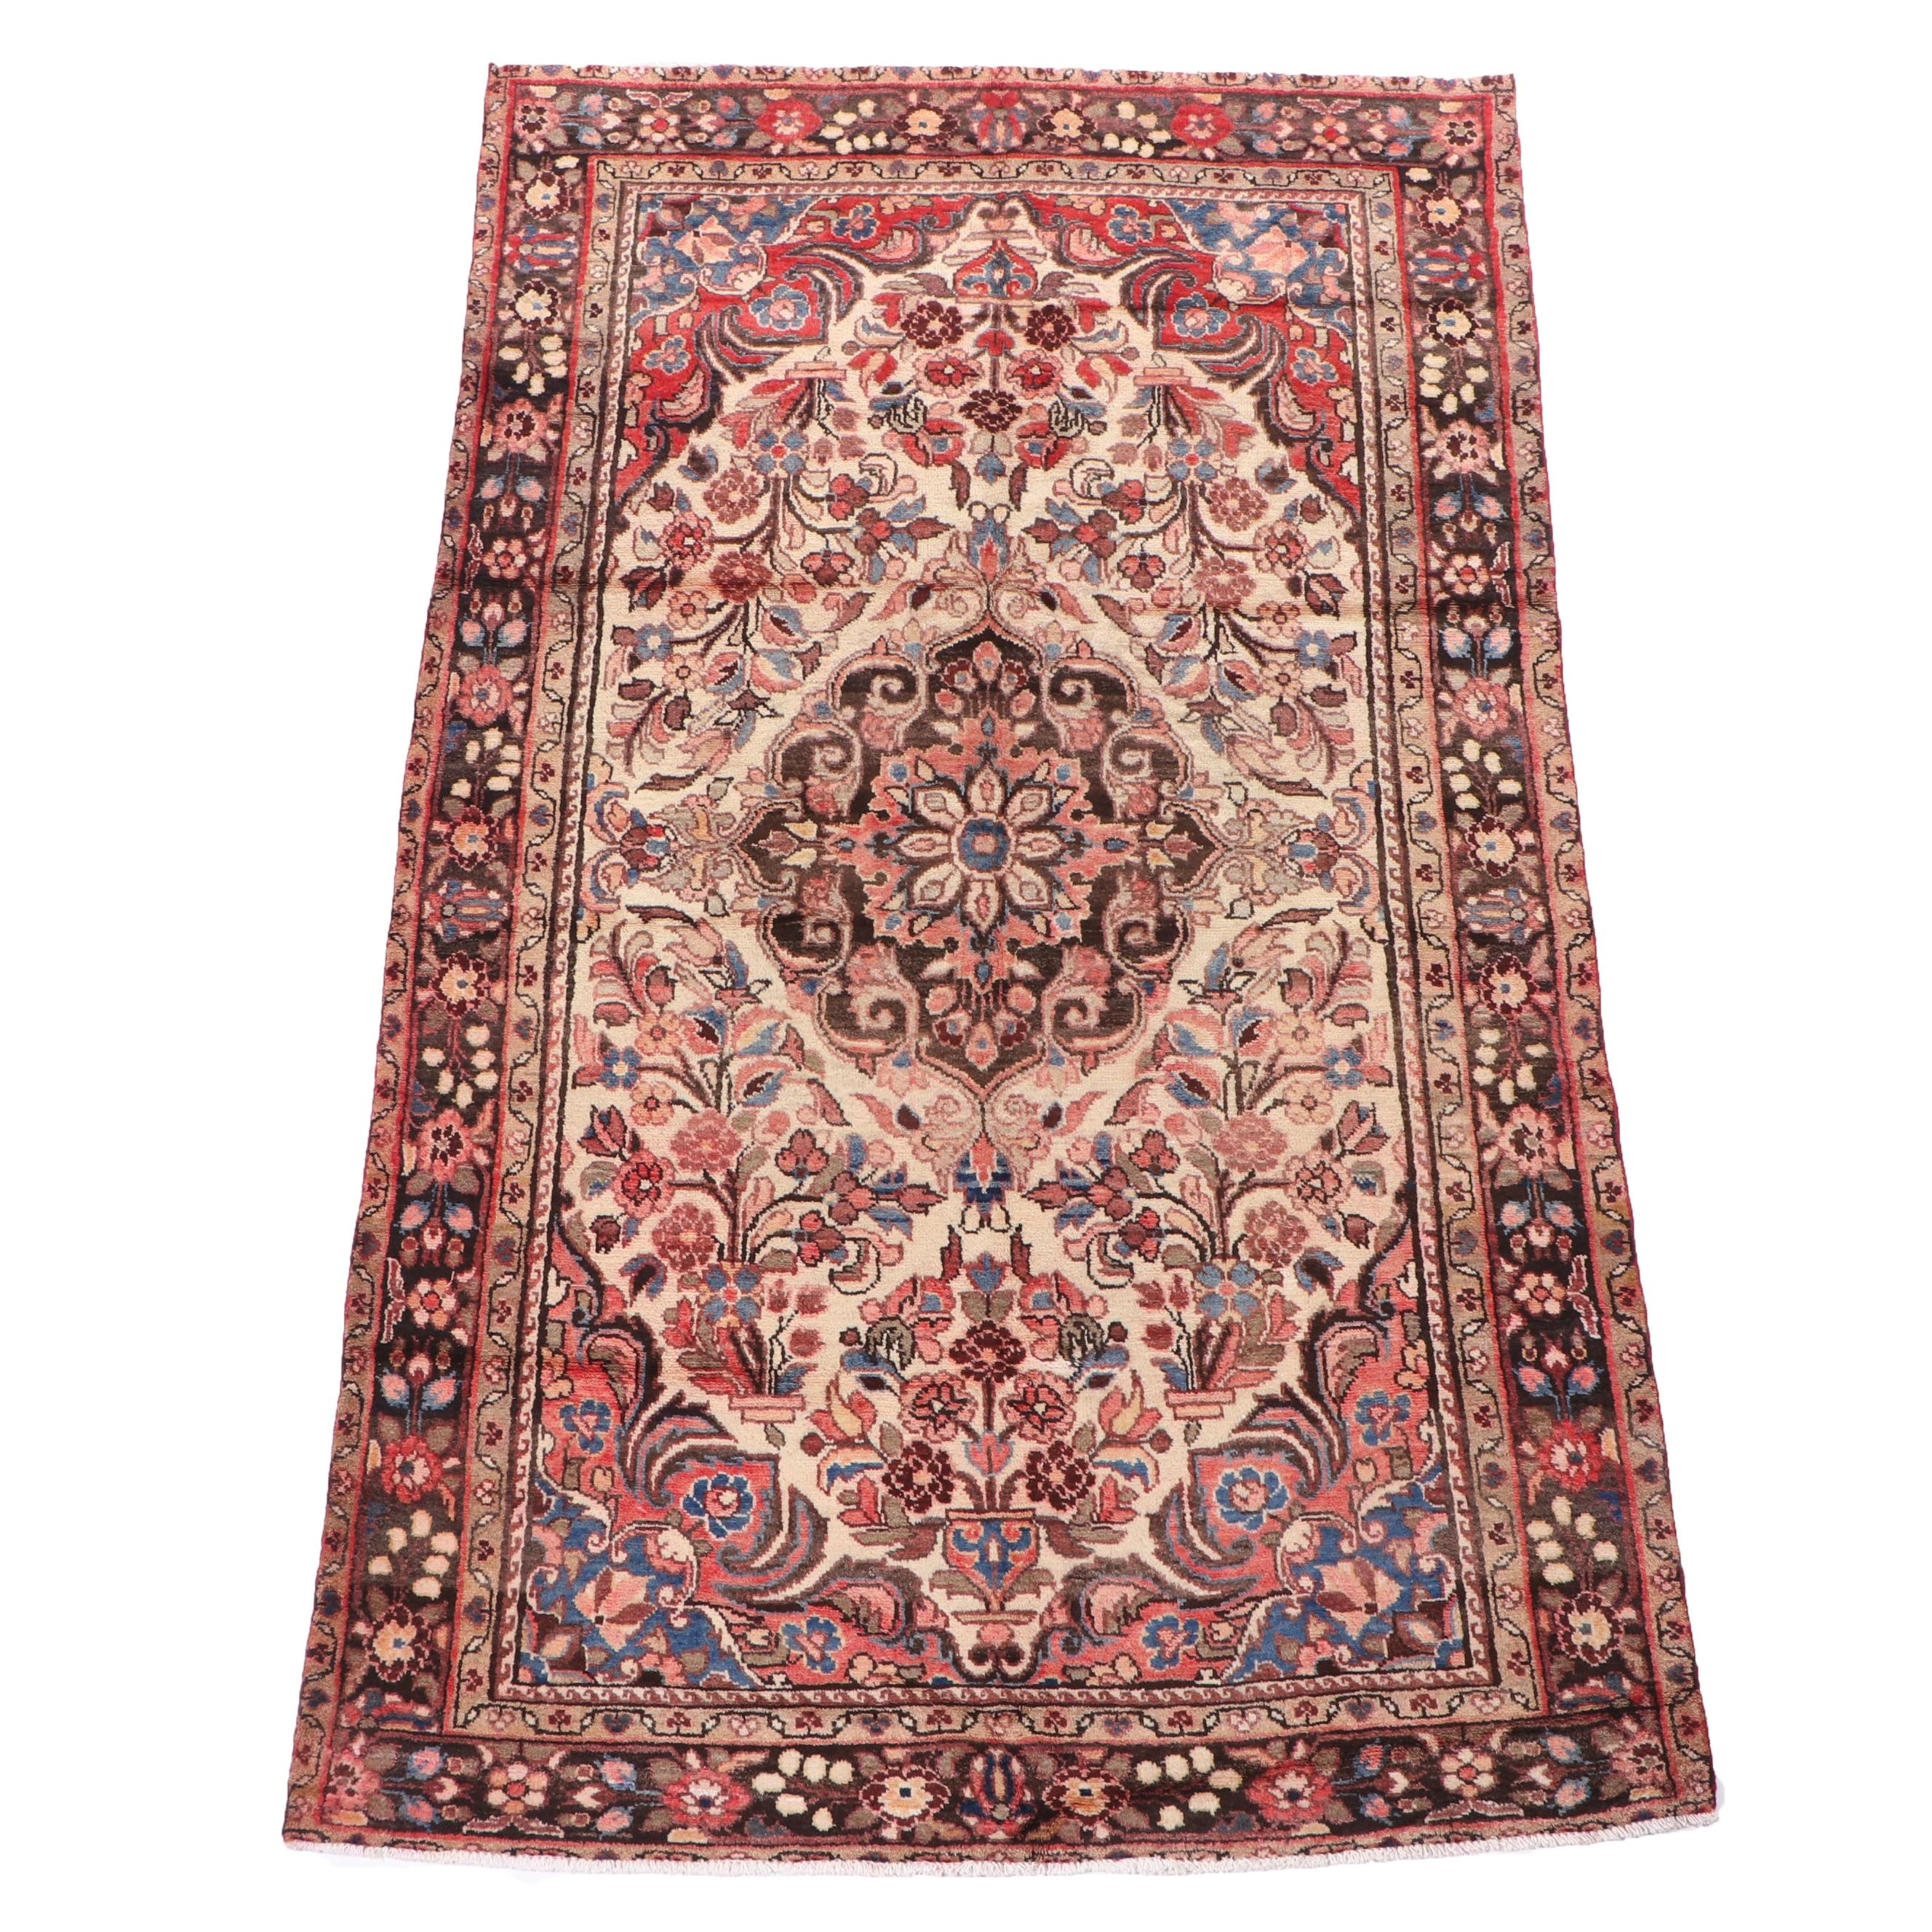 Hand-Knotted Northwest Persian Wool Rug